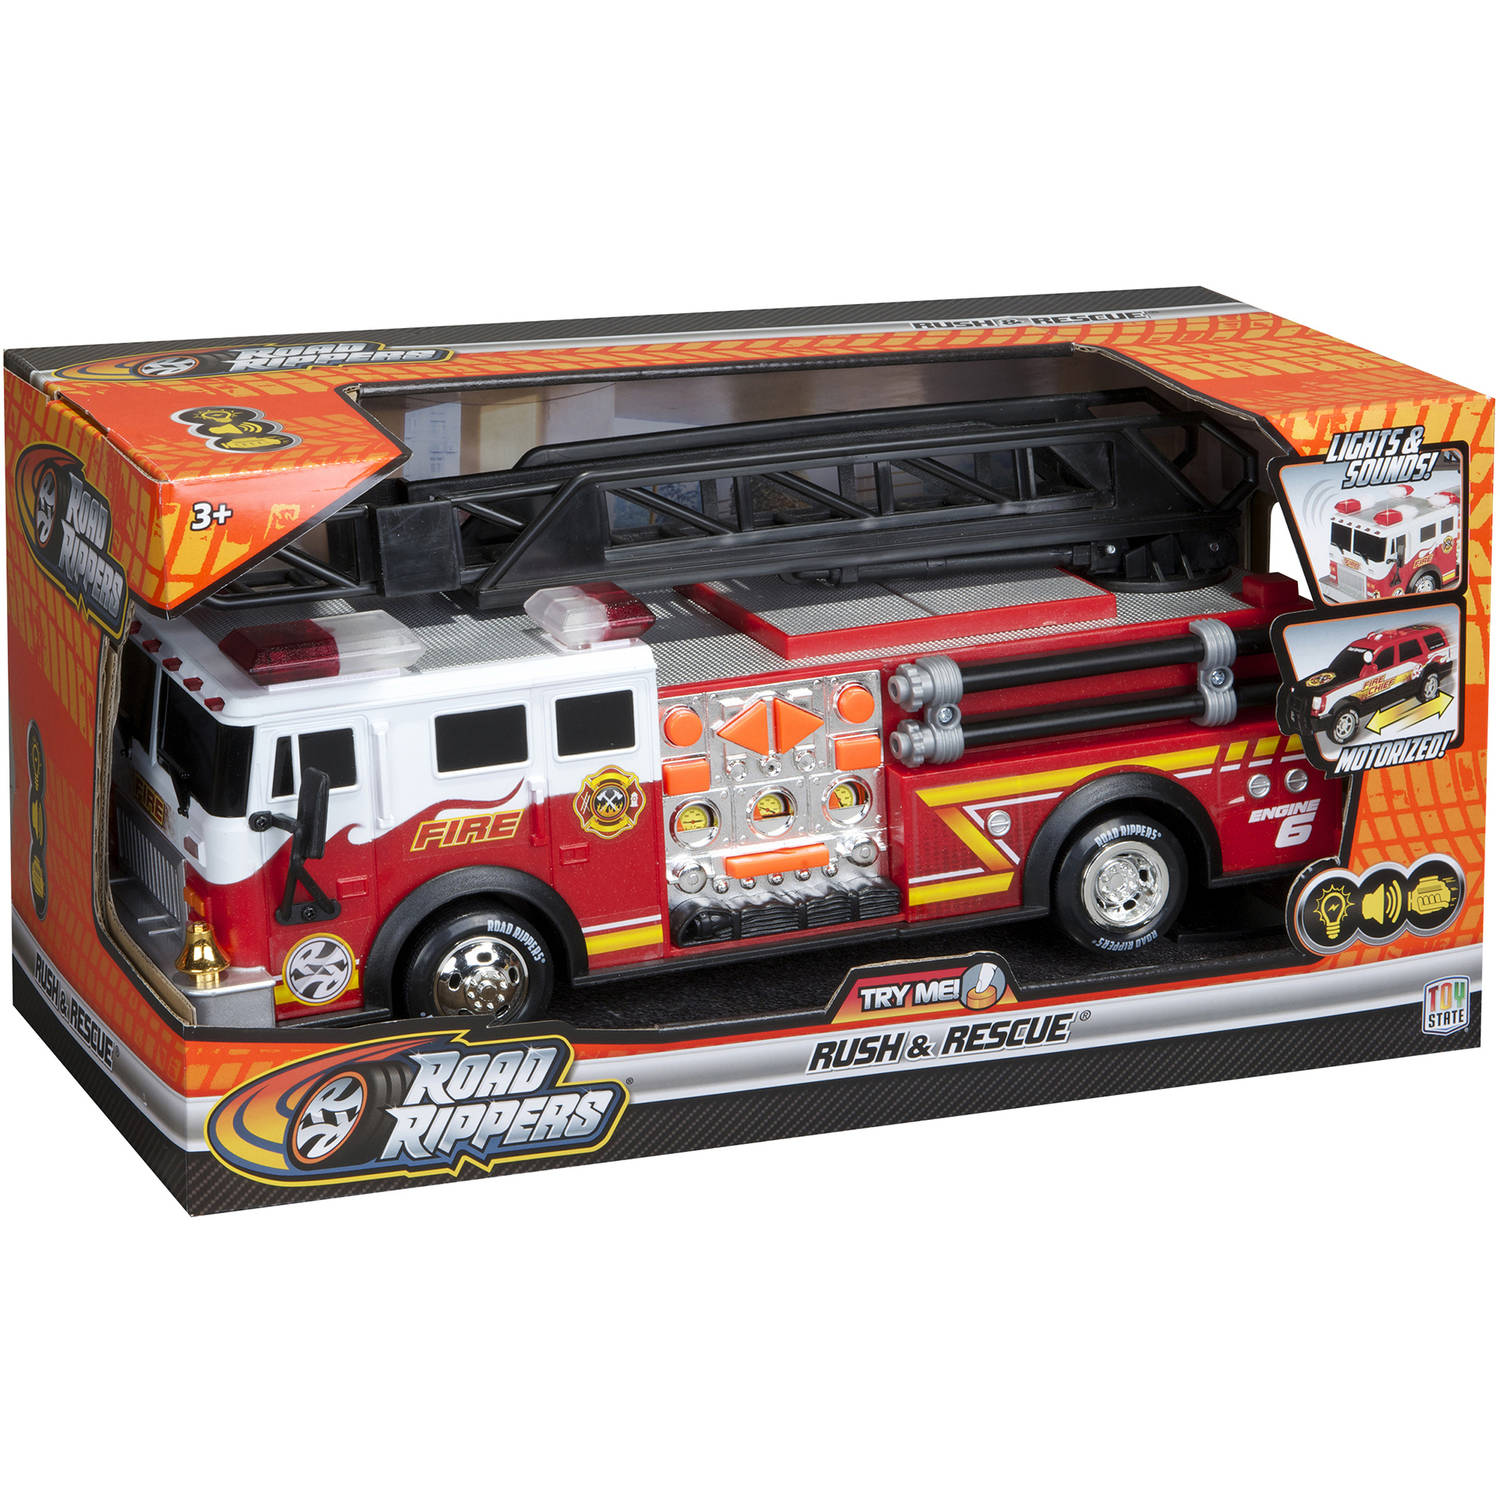 "Road Rippers 14"" Rush and Rescue Hook and Ladder Fire Truck"